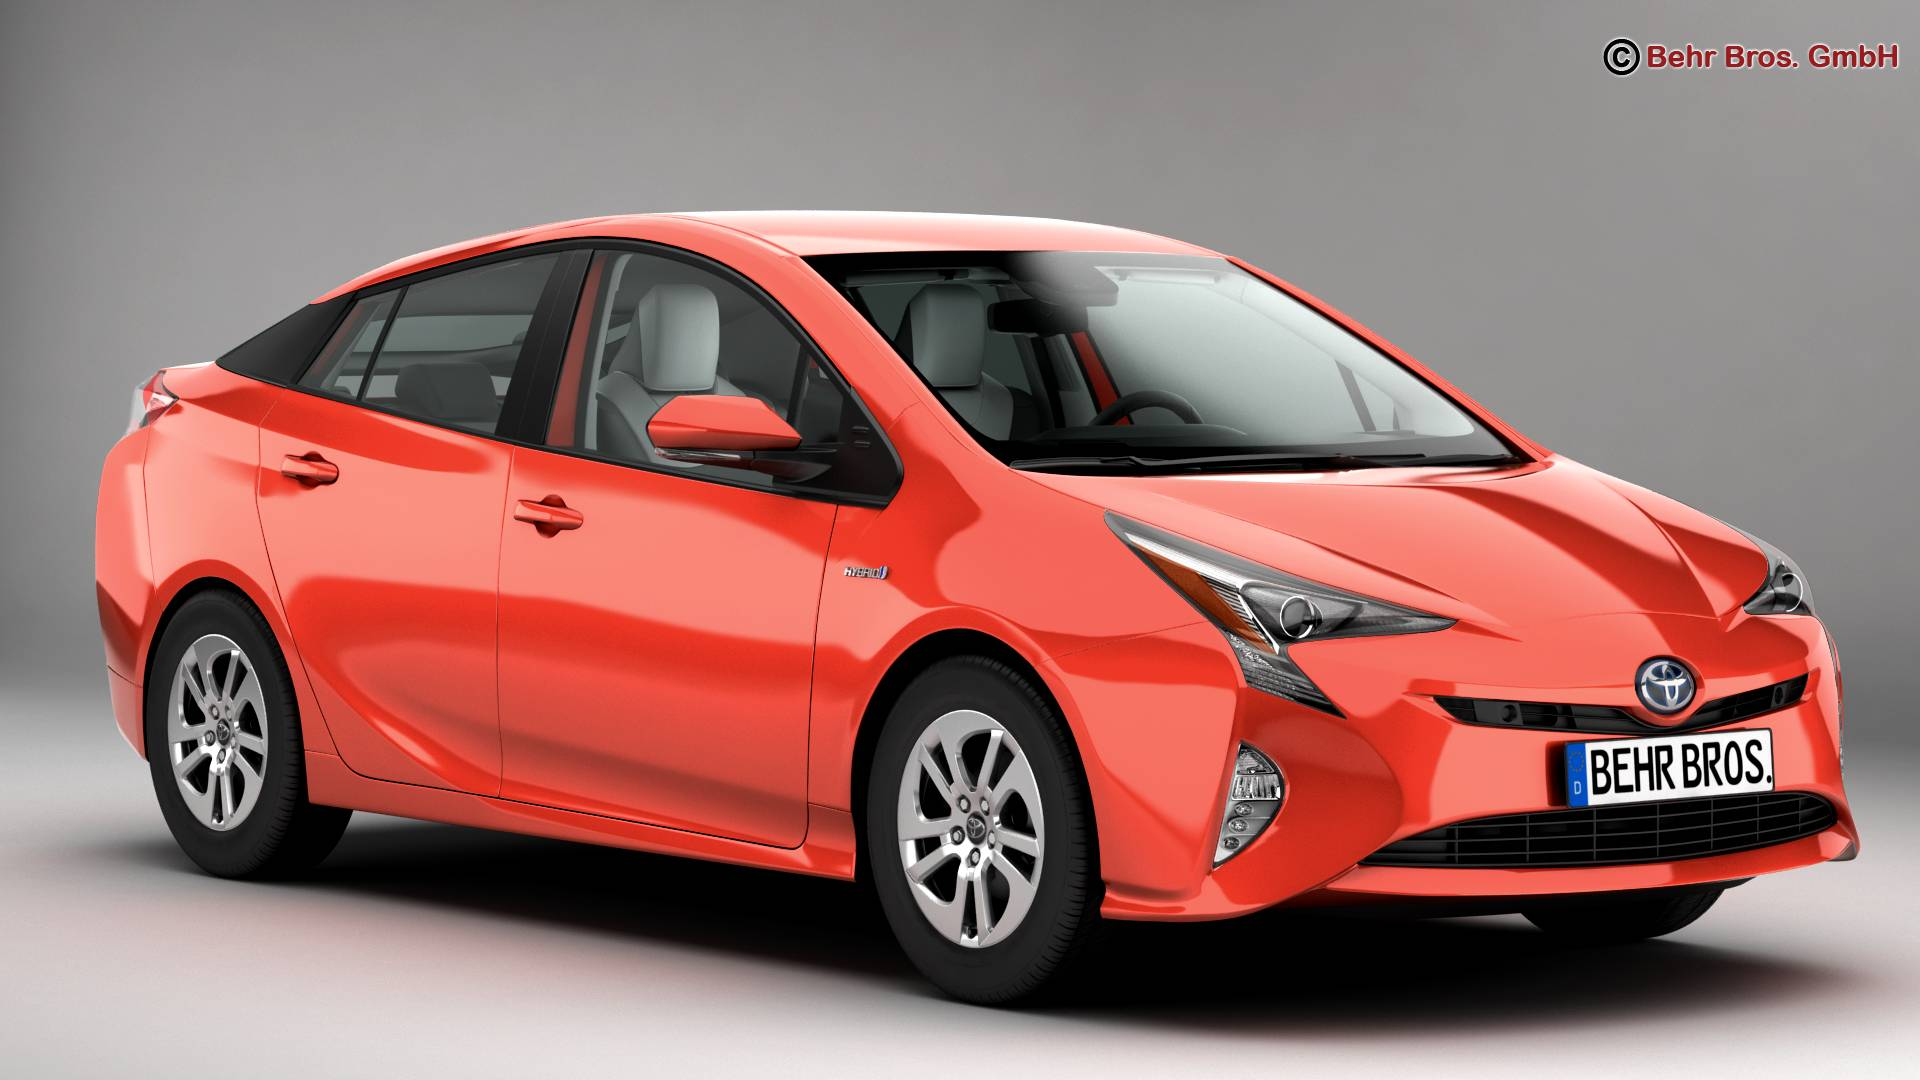 toyota prius 2016 v1 3d model buy toyota prius 2016 v1 3d model flatpyramid. Black Bedroom Furniture Sets. Home Design Ideas